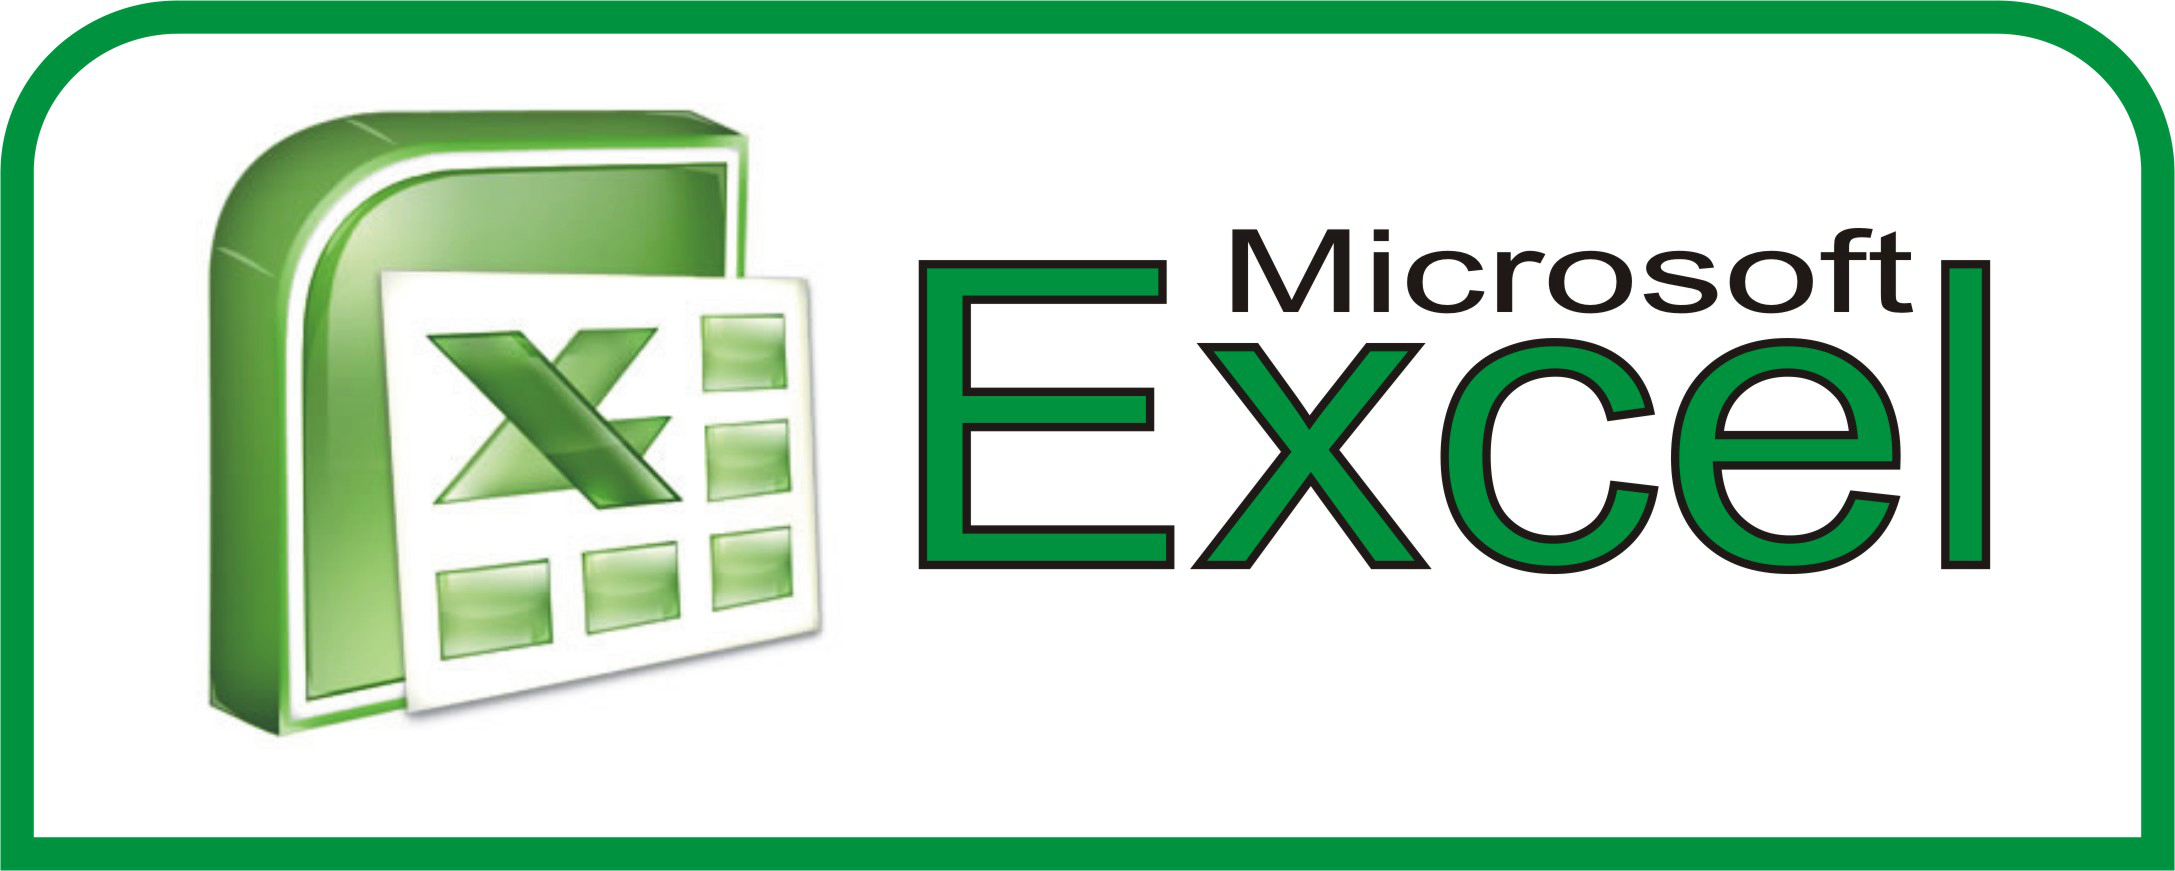 Ediblewildsus  Pleasant  Excel Shortcuts You Probably Didnt Know About  Techdissected With Remarkable How To Divide A Cell In Excel Besides How To Order Numbers In Excel Furthermore How To Password Protect A Excel File With Delectable   Excel Also How To Stop Excel From Rounding In Addition How To Group Cells In Excel And How To Find Standard Error In Excel As Well As How To Enter Time In Excel Additionally Frequency Histogram Excel From Techdissectedcom With Ediblewildsus  Remarkable  Excel Shortcuts You Probably Didnt Know About  Techdissected With Delectable How To Divide A Cell In Excel Besides How To Order Numbers In Excel Furthermore How To Password Protect A Excel File And Pleasant   Excel Also How To Stop Excel From Rounding In Addition How To Group Cells In Excel From Techdissectedcom